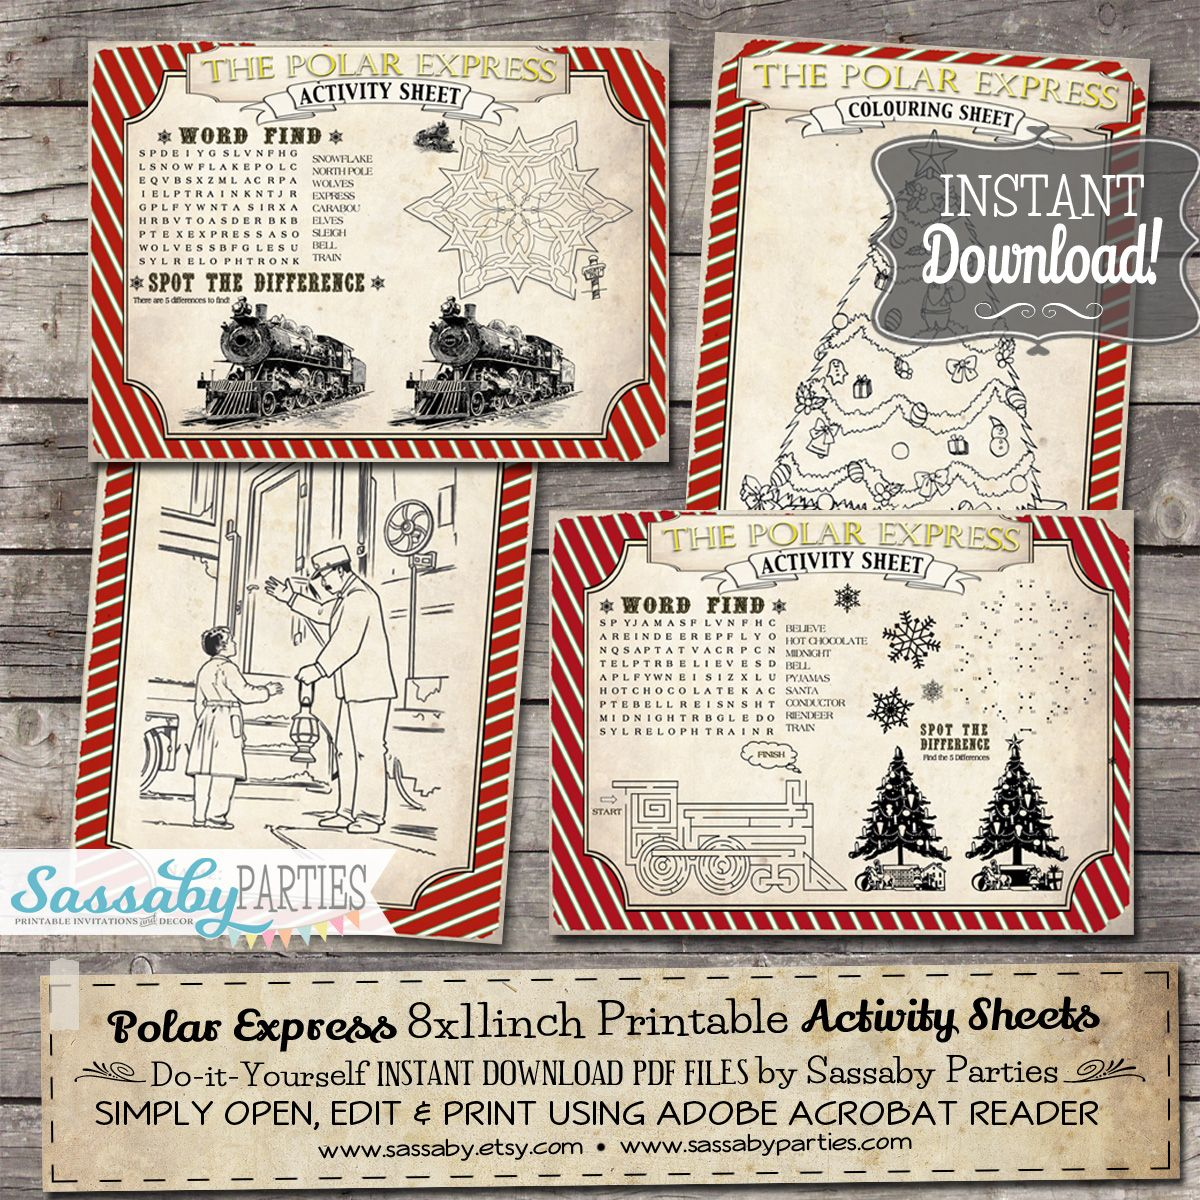 Polar Express Activity Sheets Red | Christmas australia, Party ...